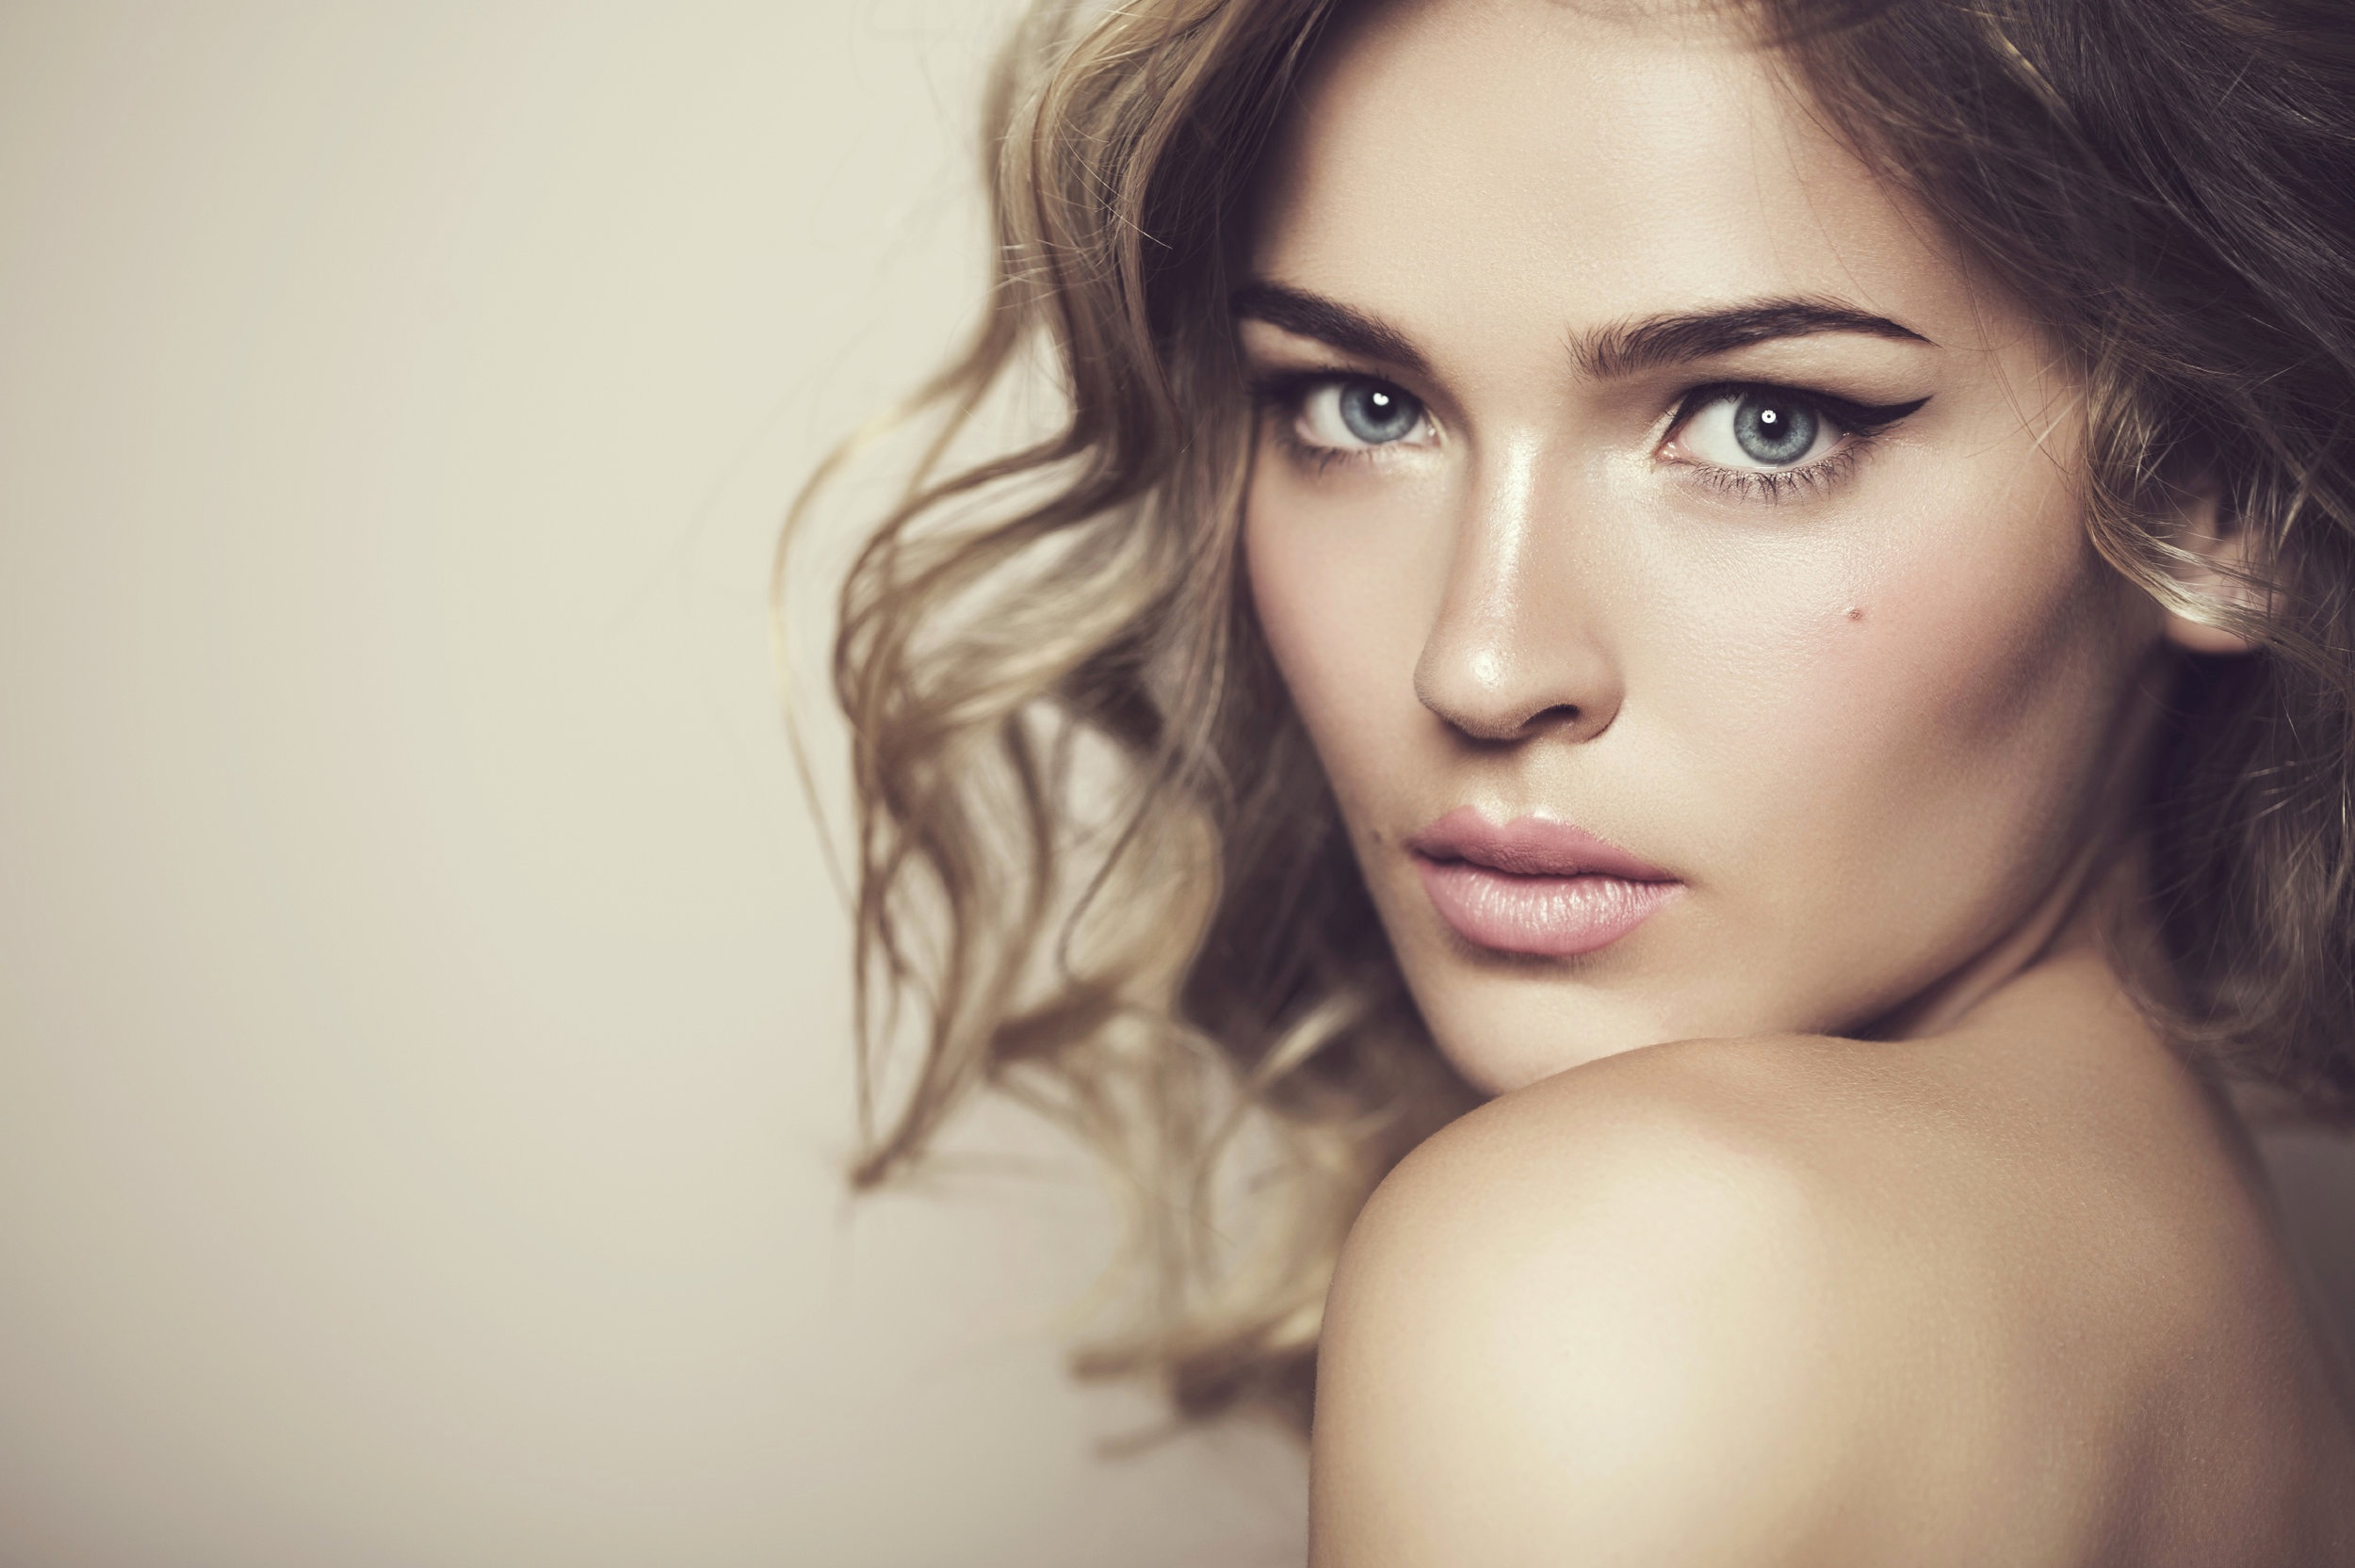 Microblading - Beauty That Defines You